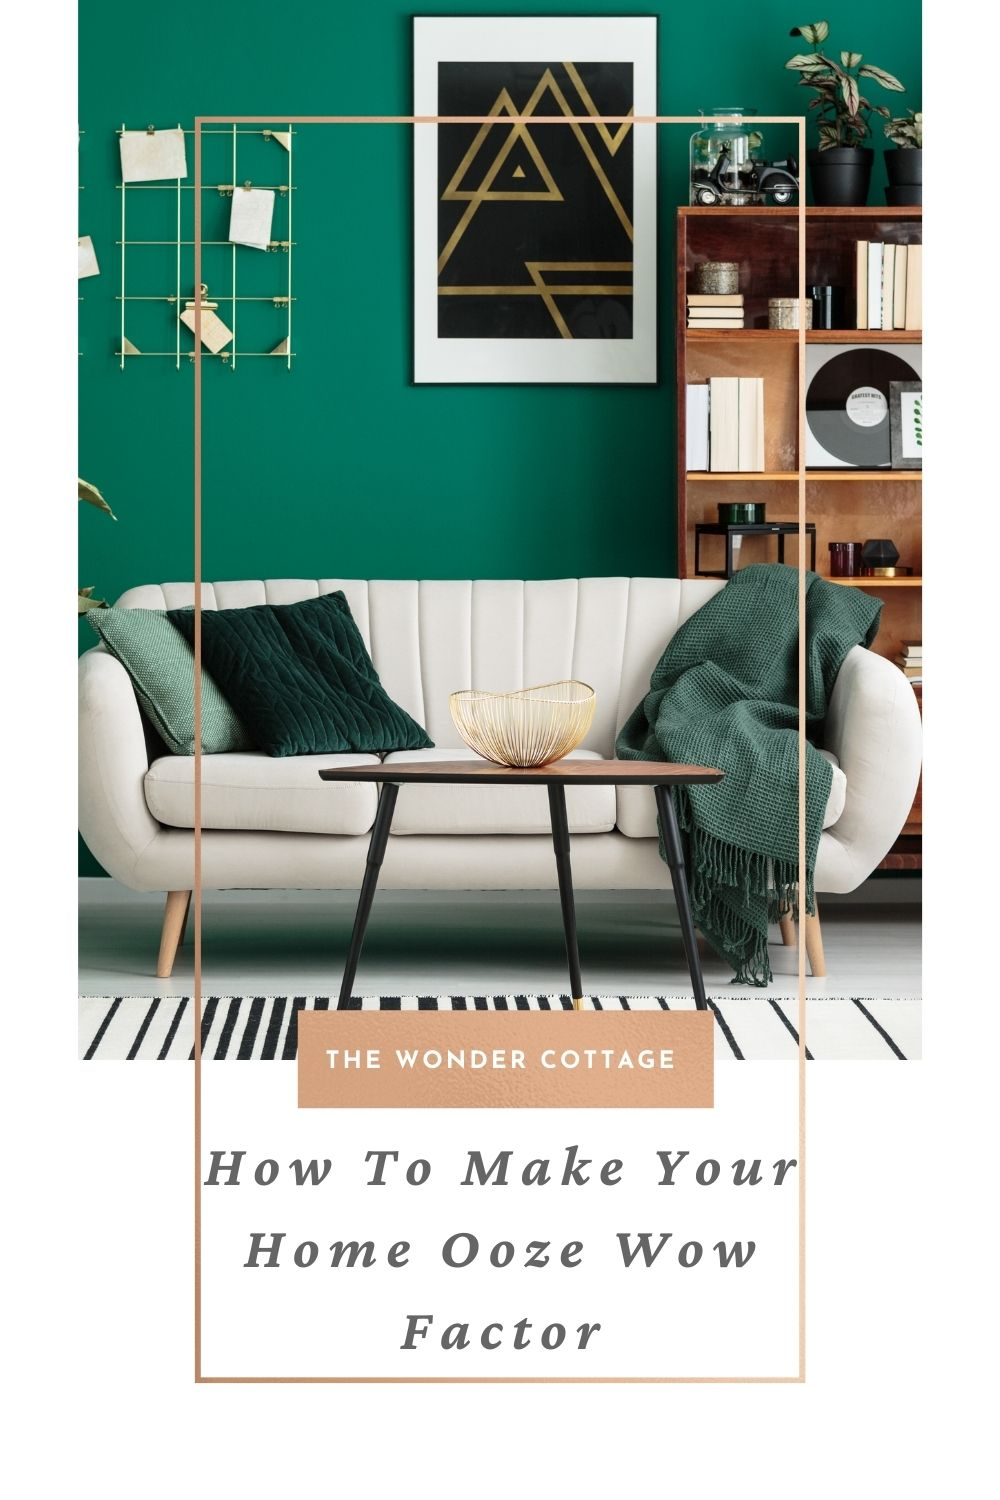 How to make your home ooze wow factor